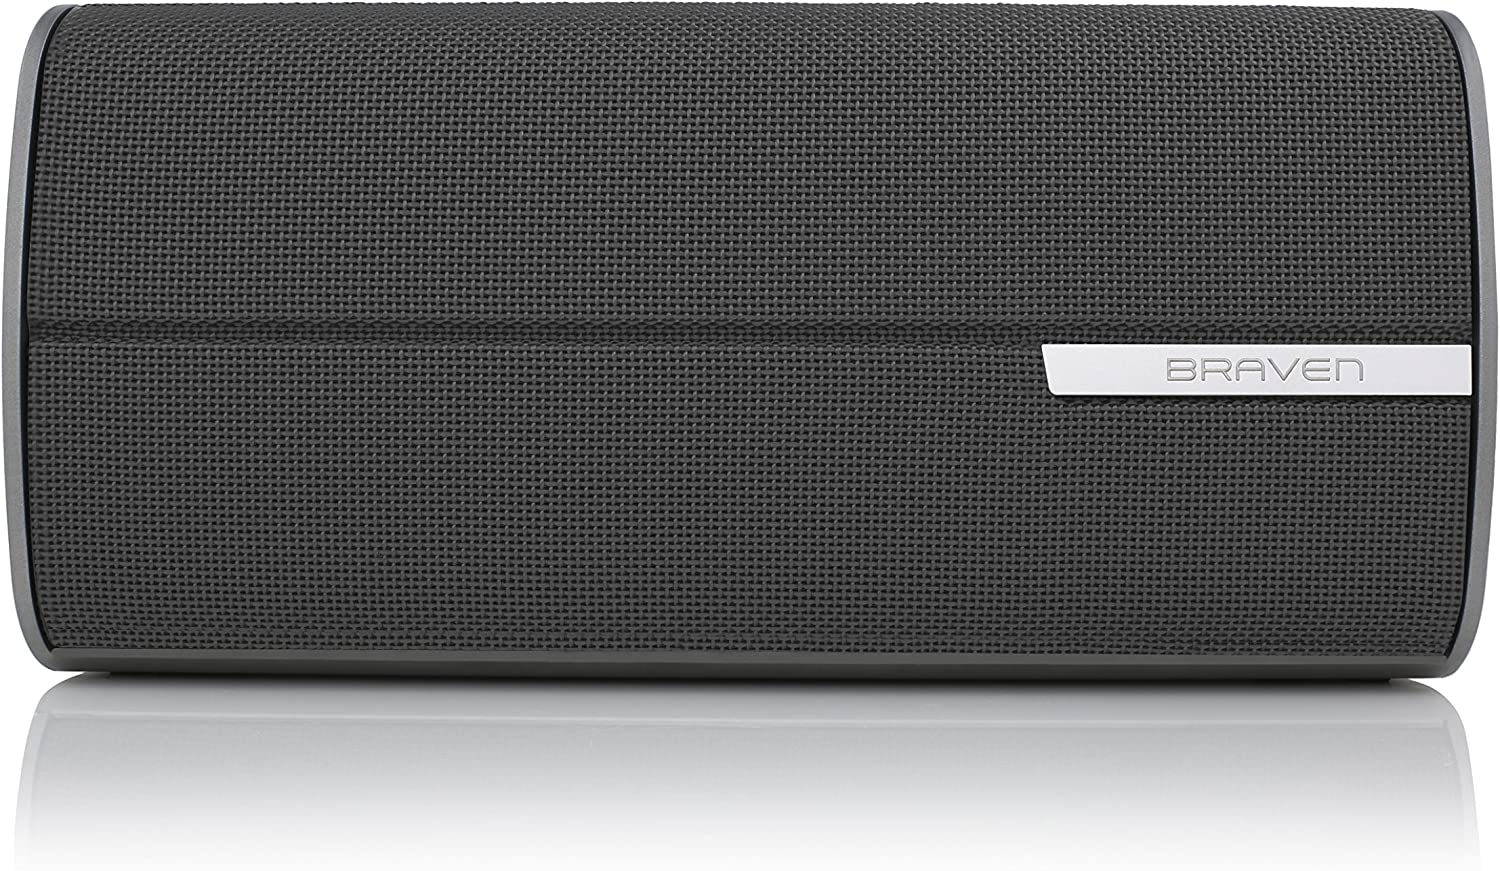 Braven 2200m Portable Bluetooth Speaker Graphite//Dark Gray 10 Hour Playtime 8800 mAh